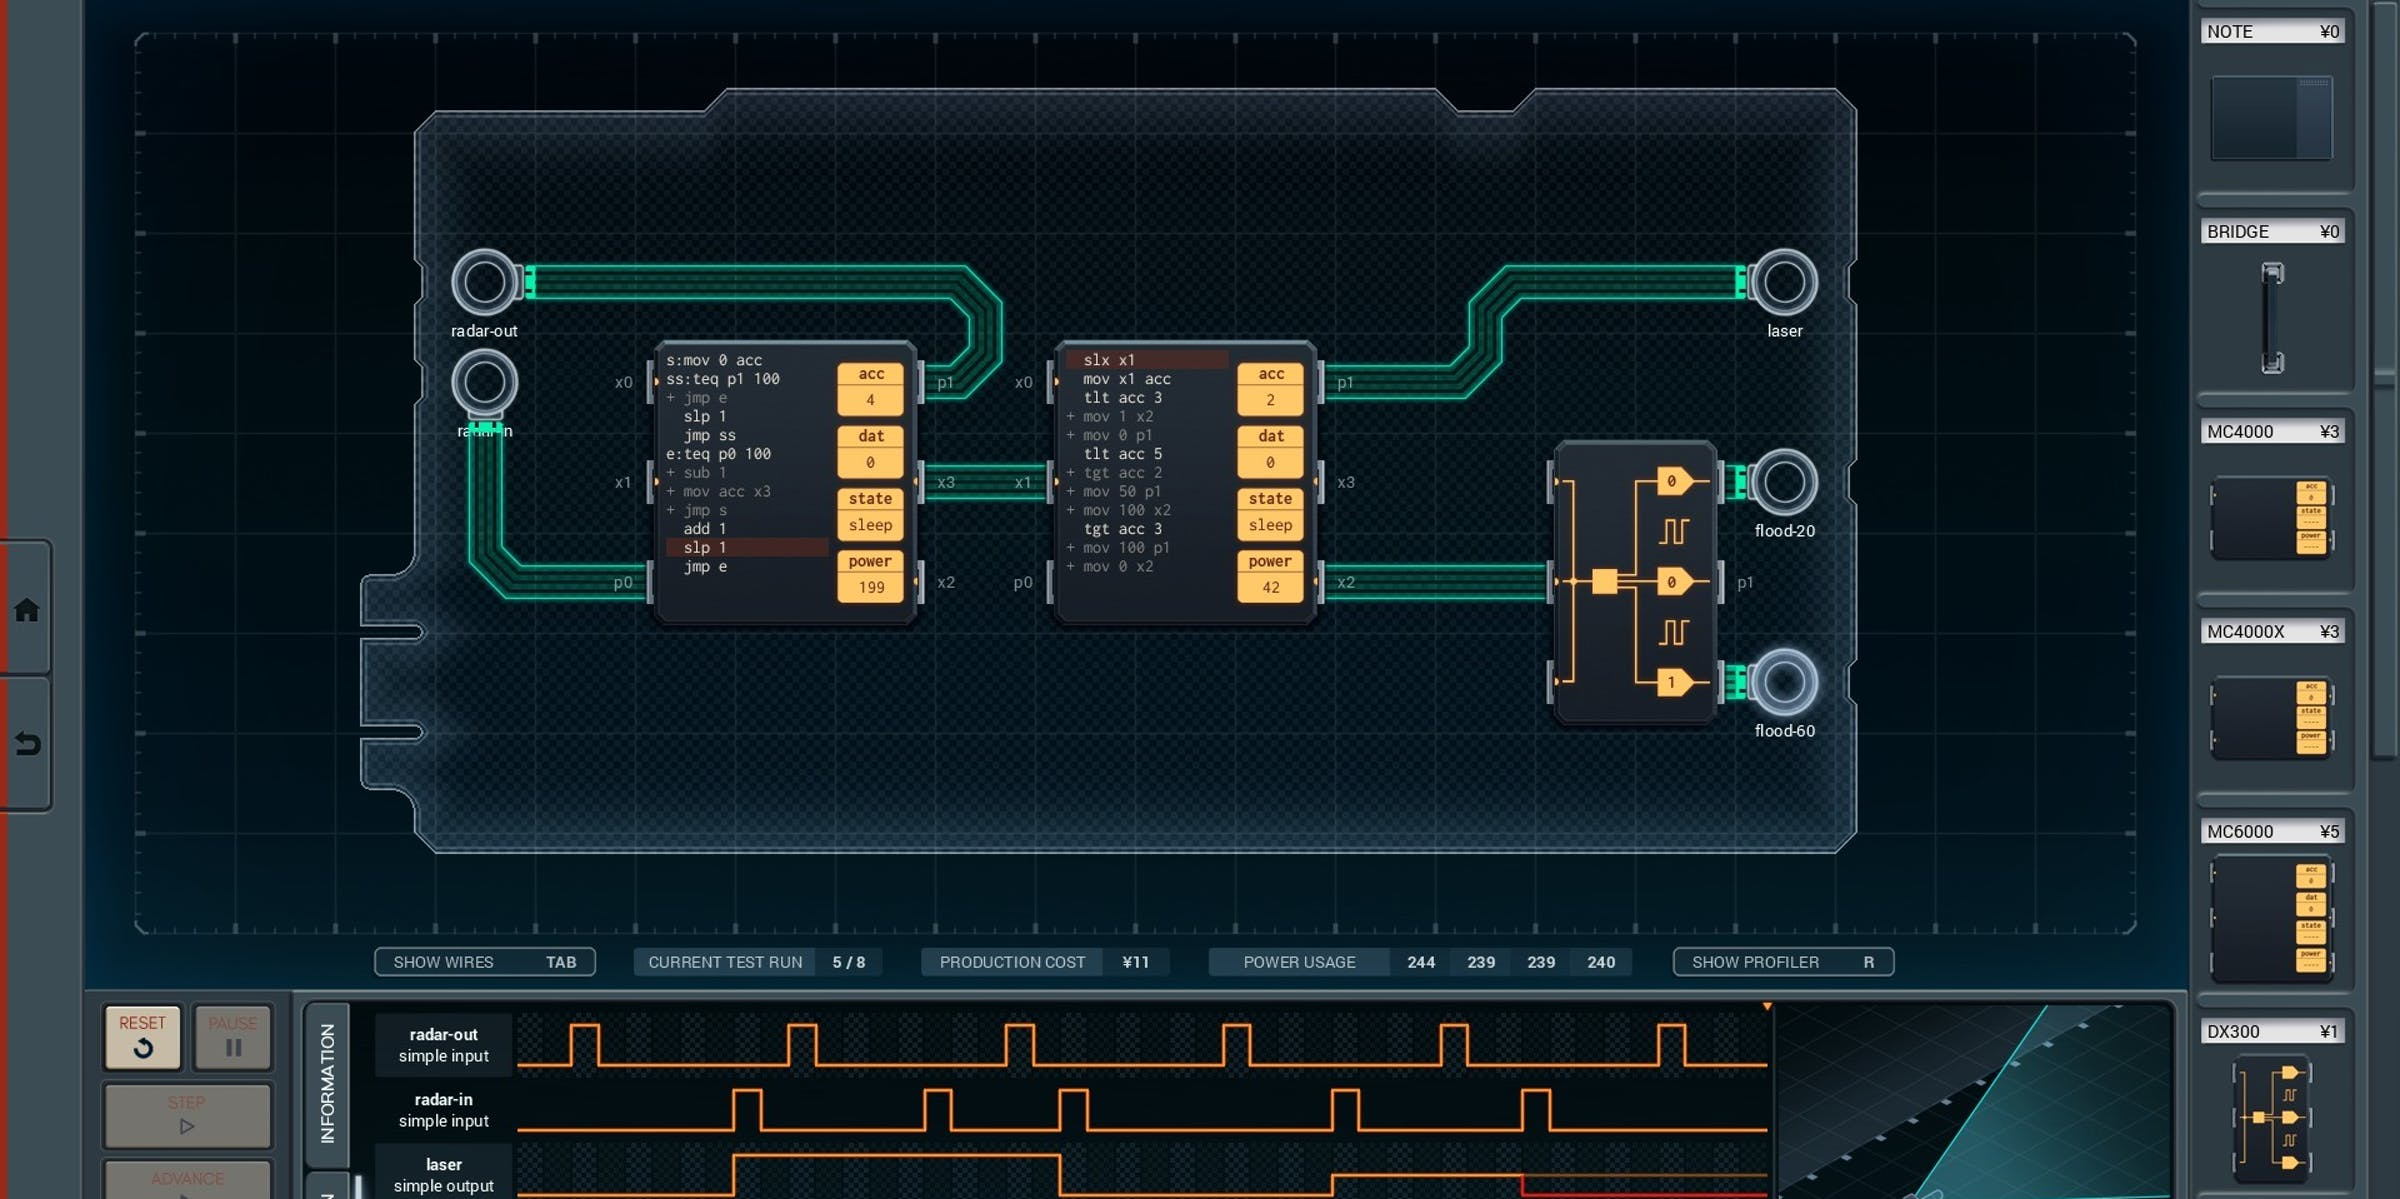 Shenzhen I O Is An Abstract Educational Game Inverse Circuit Diagram Electronics For U Circuits Education Good Tools Welcome To Learning The Intentionally Hard Way